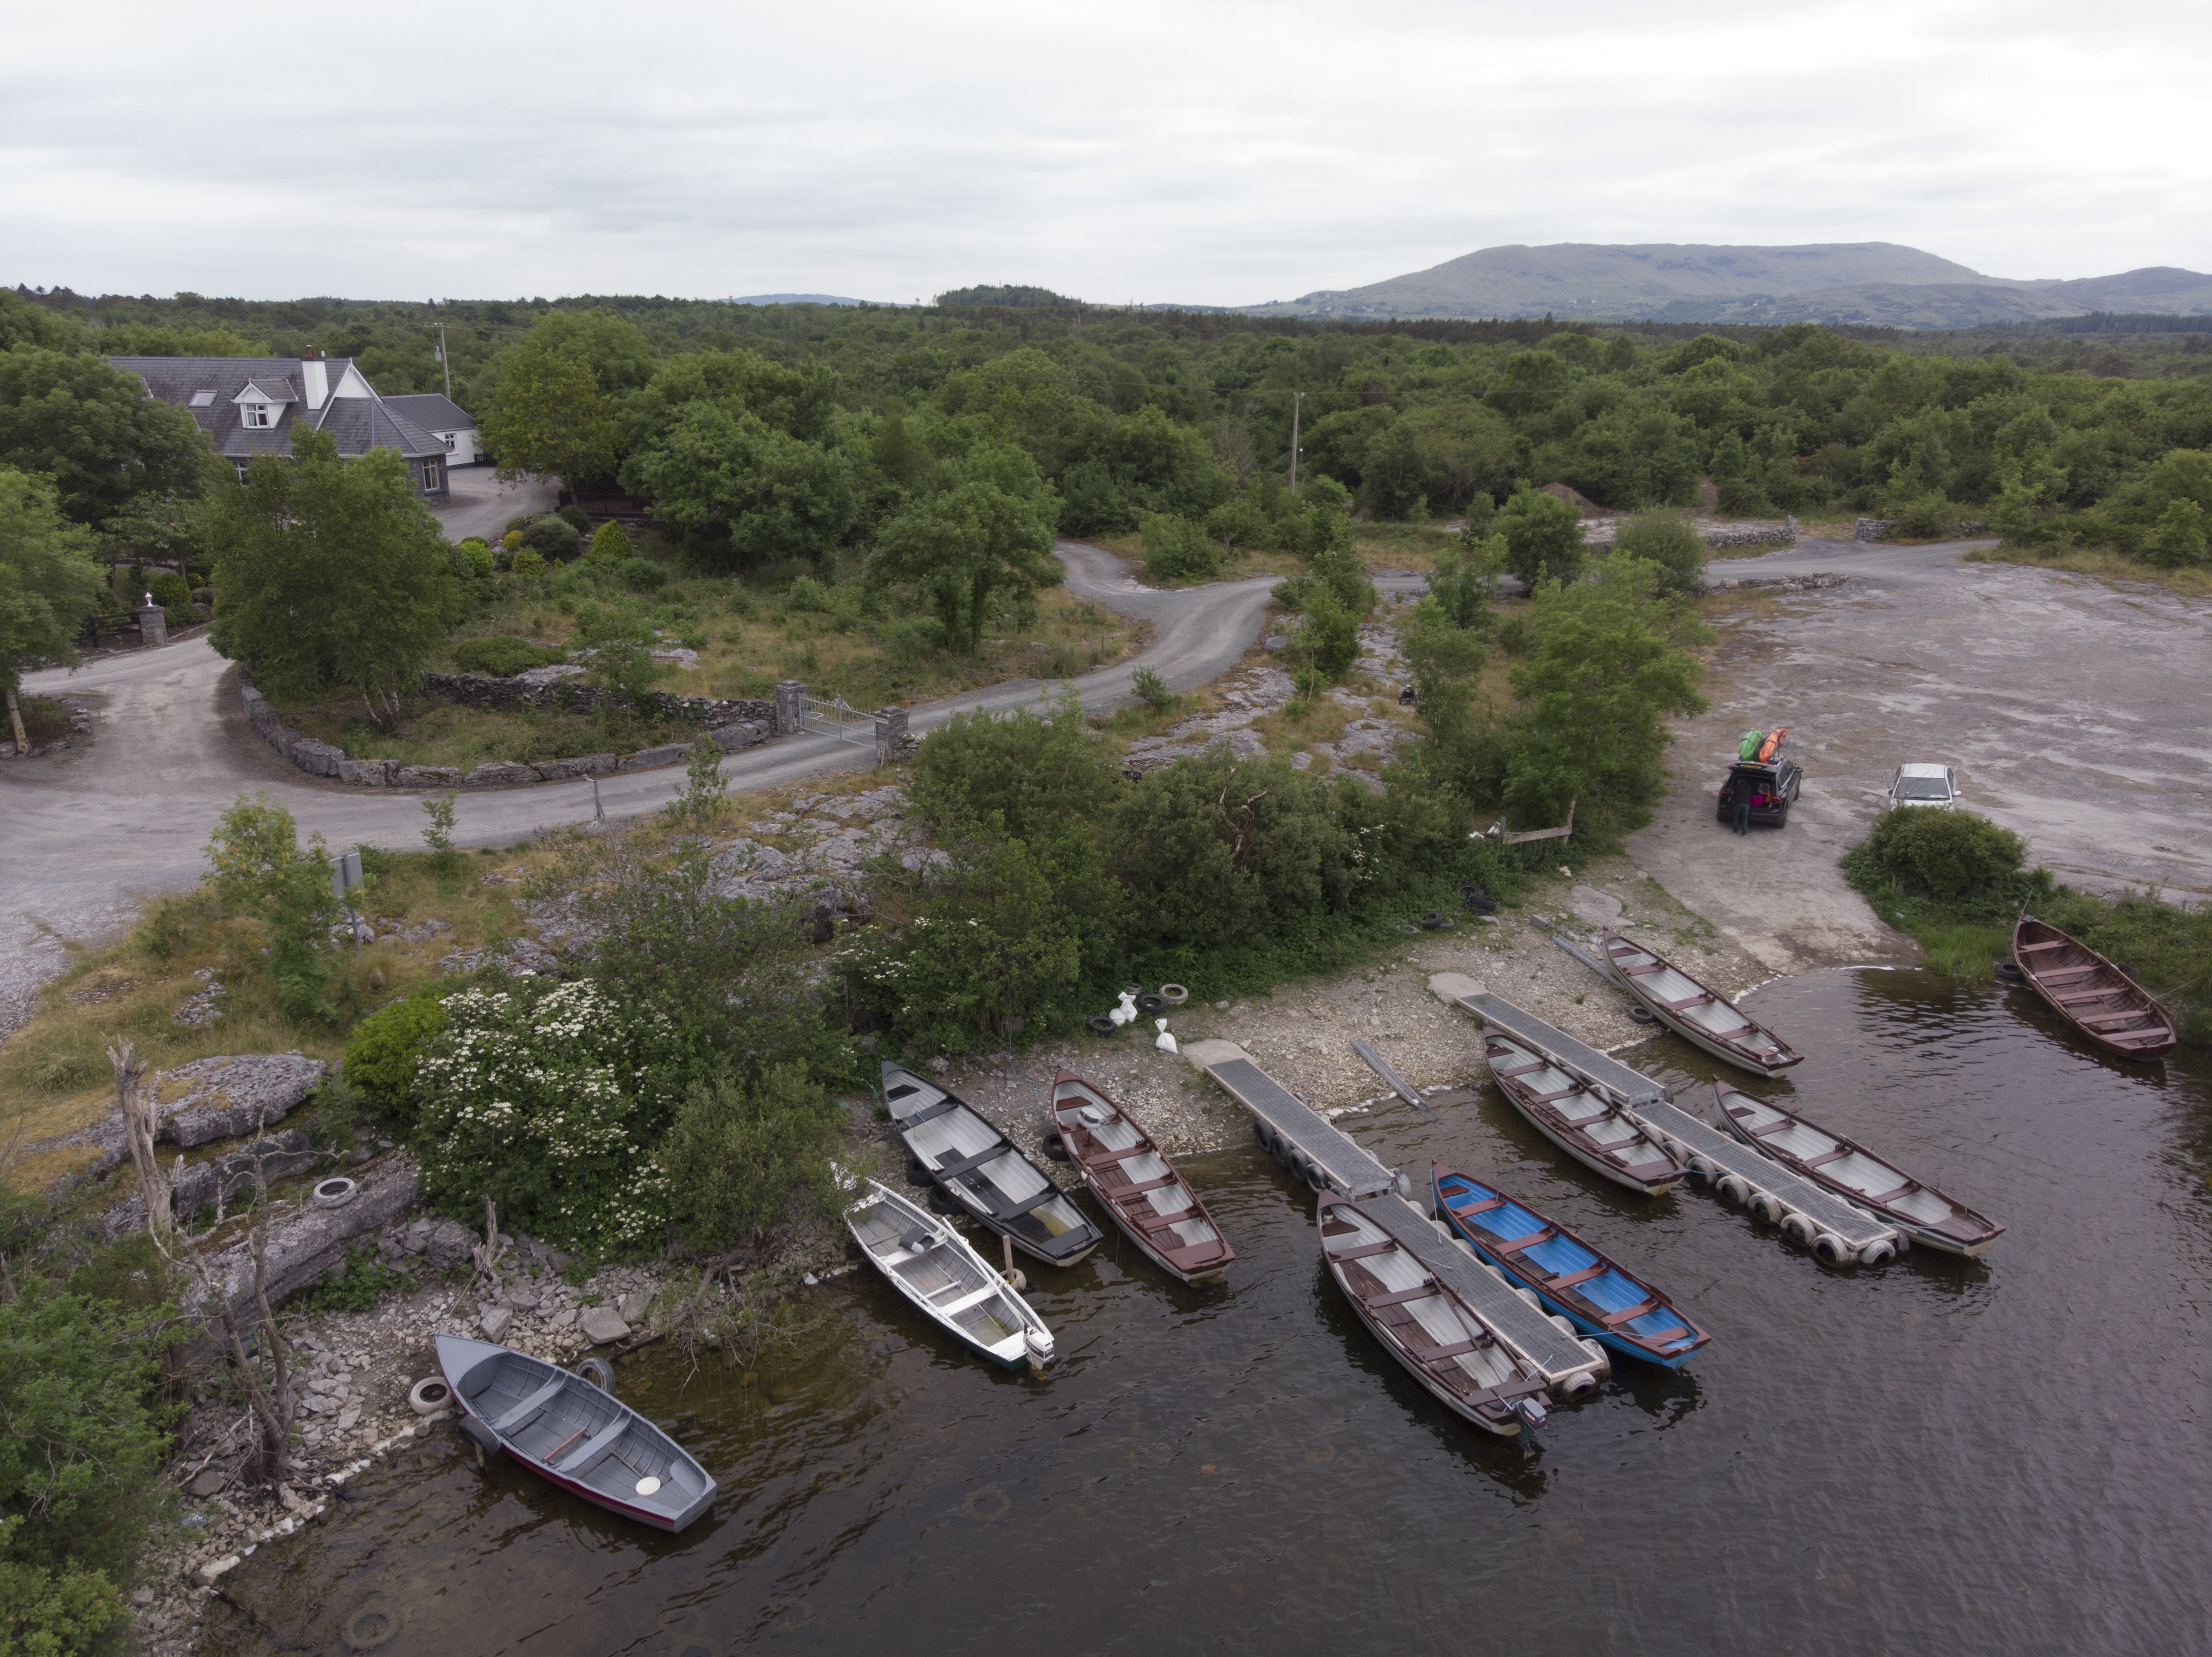 Ariel View of Dringeen Bay Angling Centre